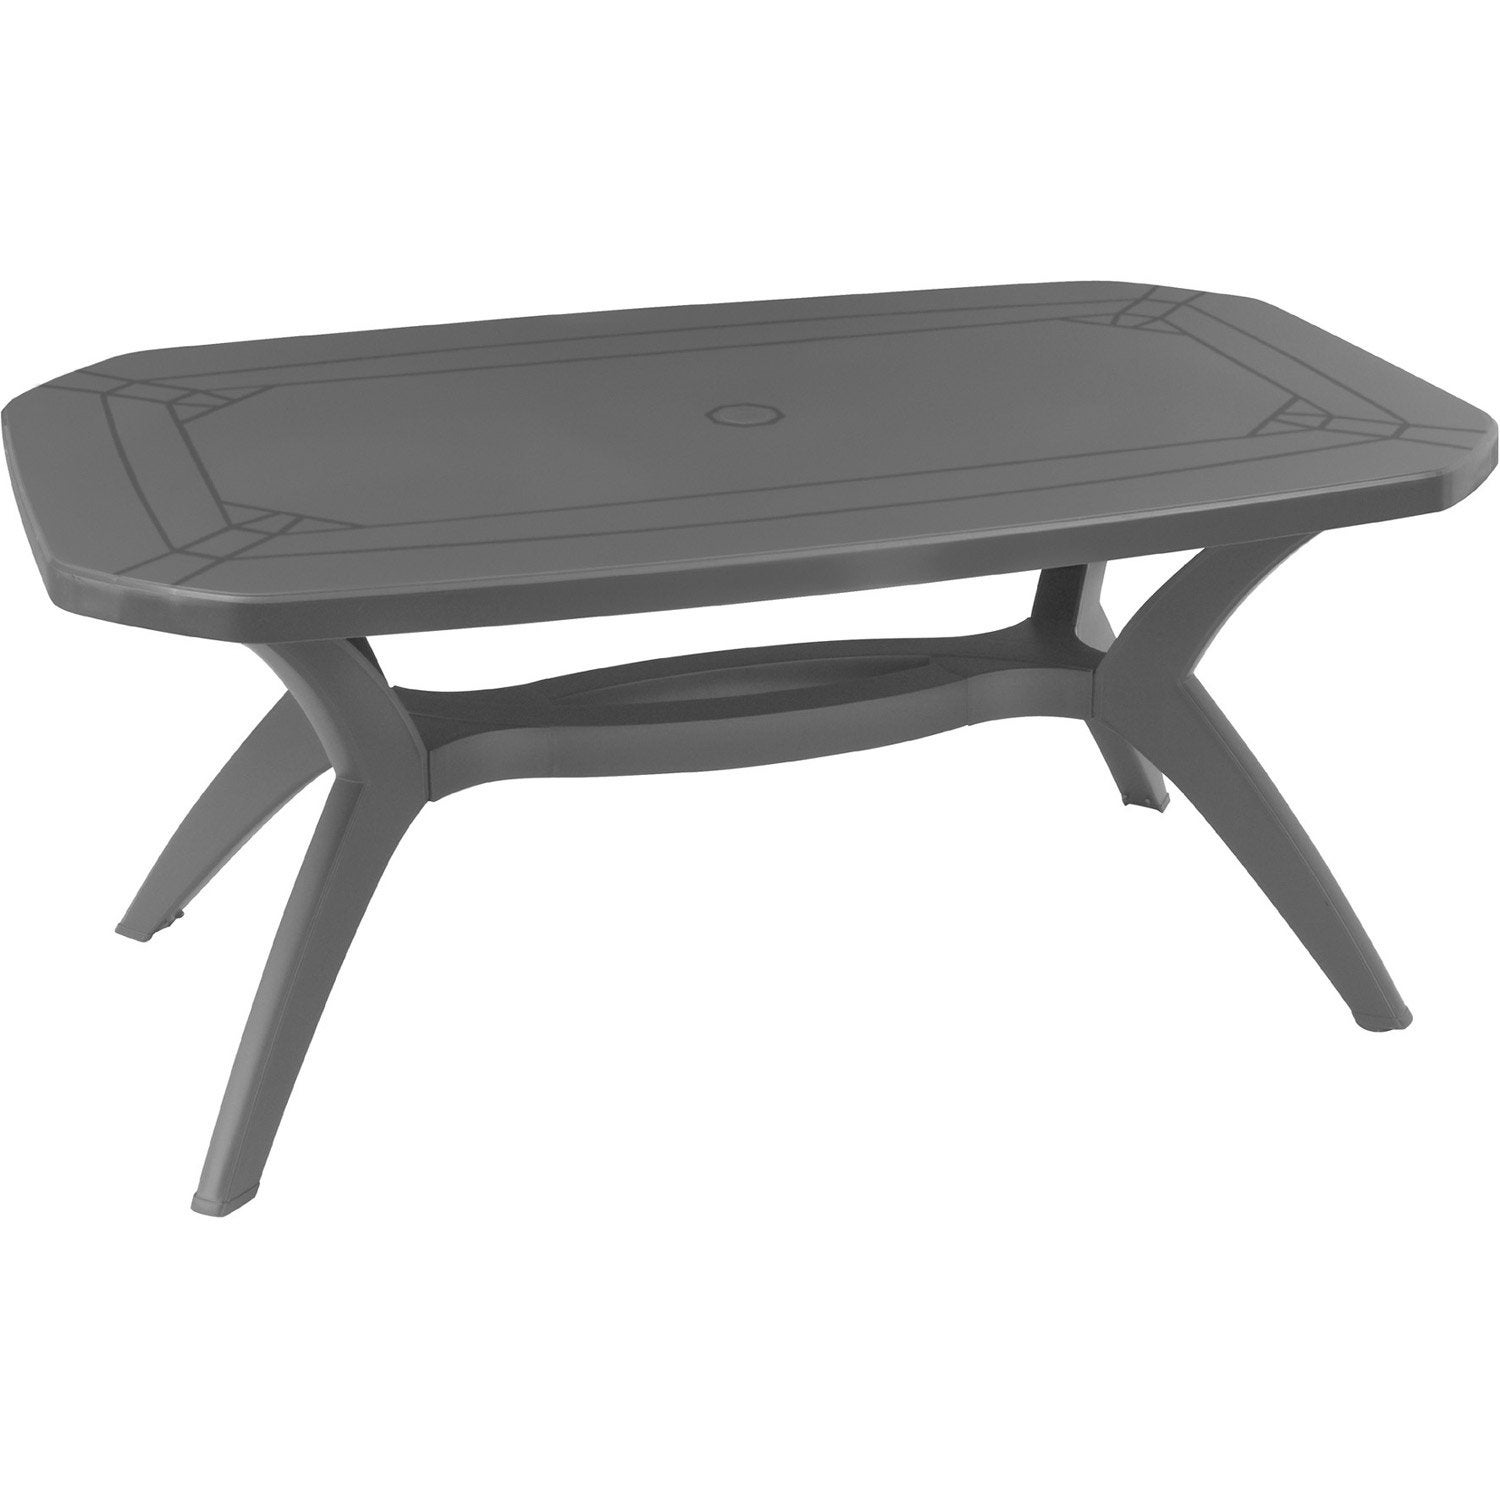 Table ronde jardin la redoute - La redoute table ronde ...